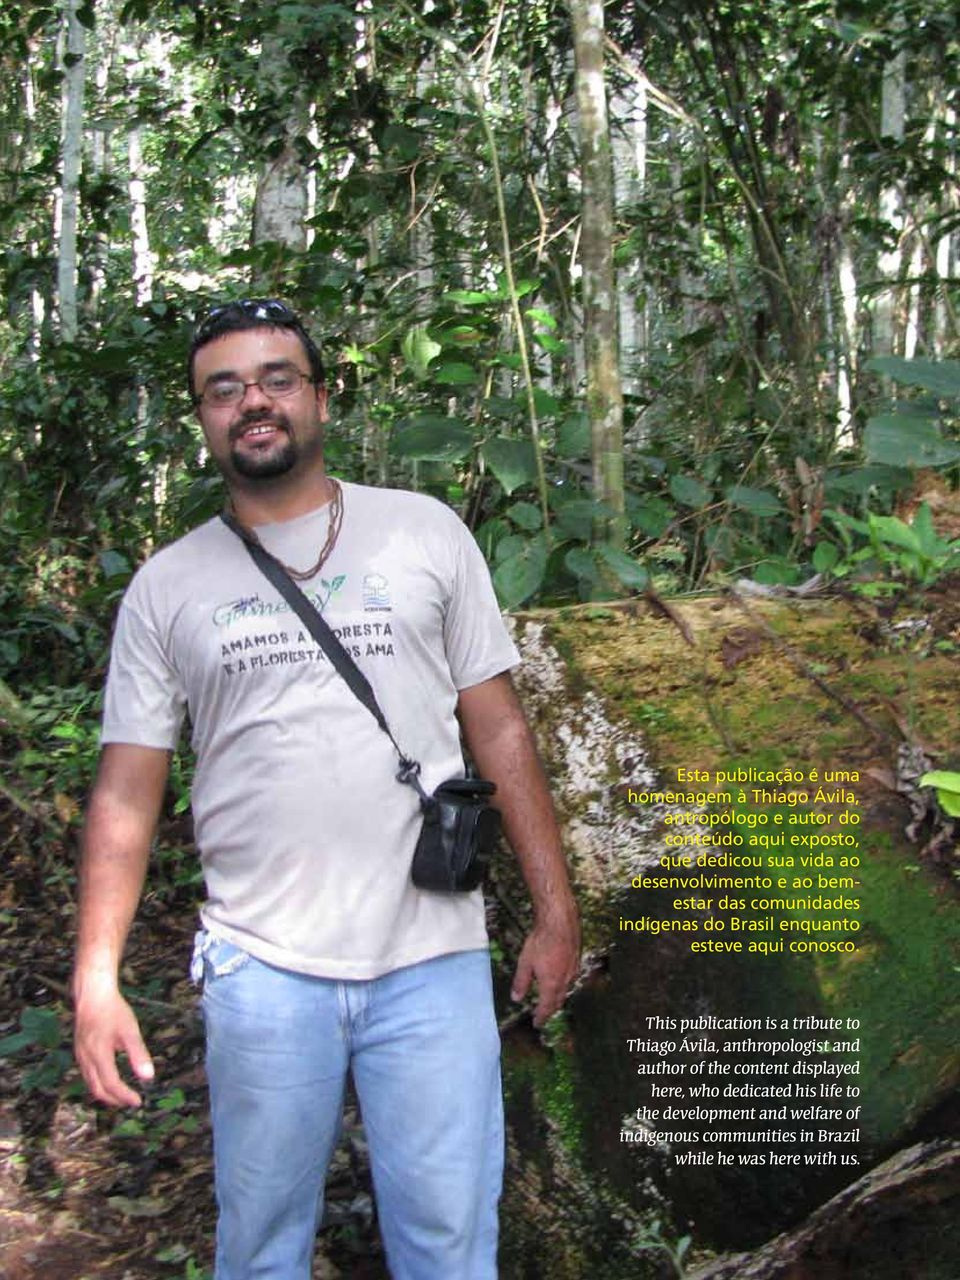 This publication is a tribute to Thiago Ávila, anthropologist and author of the content displayed here, who